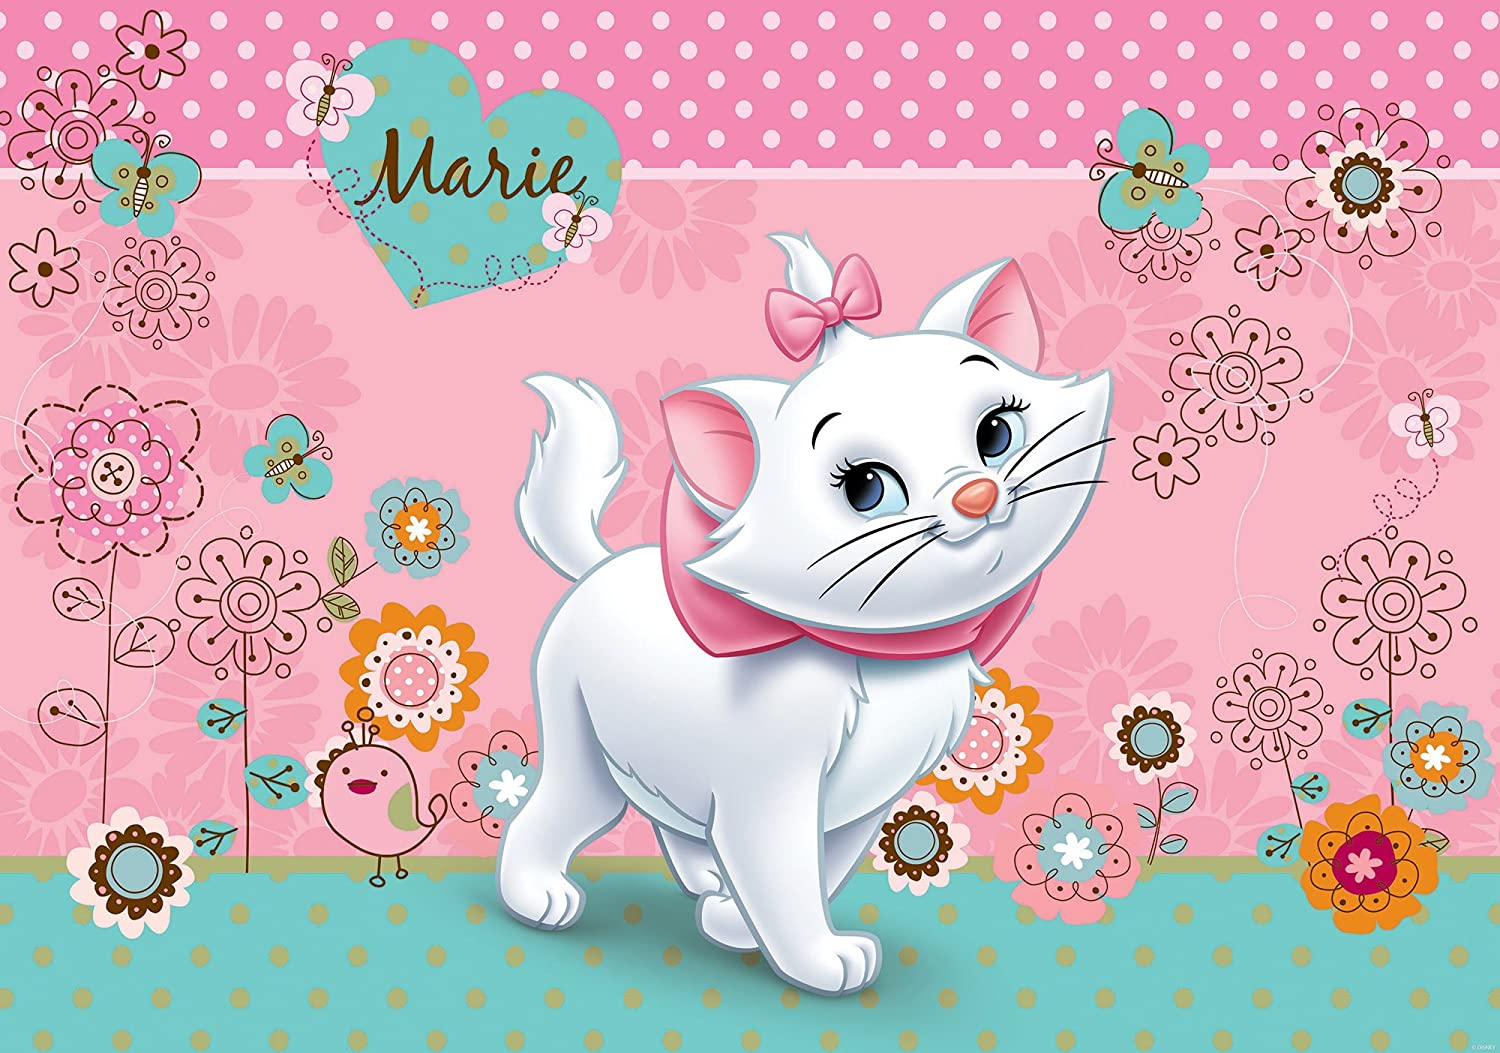 Amazon Disney Aristocats Marie壁紙壁画 X Large 254x184 Cm Wxh 801p4 壁紙